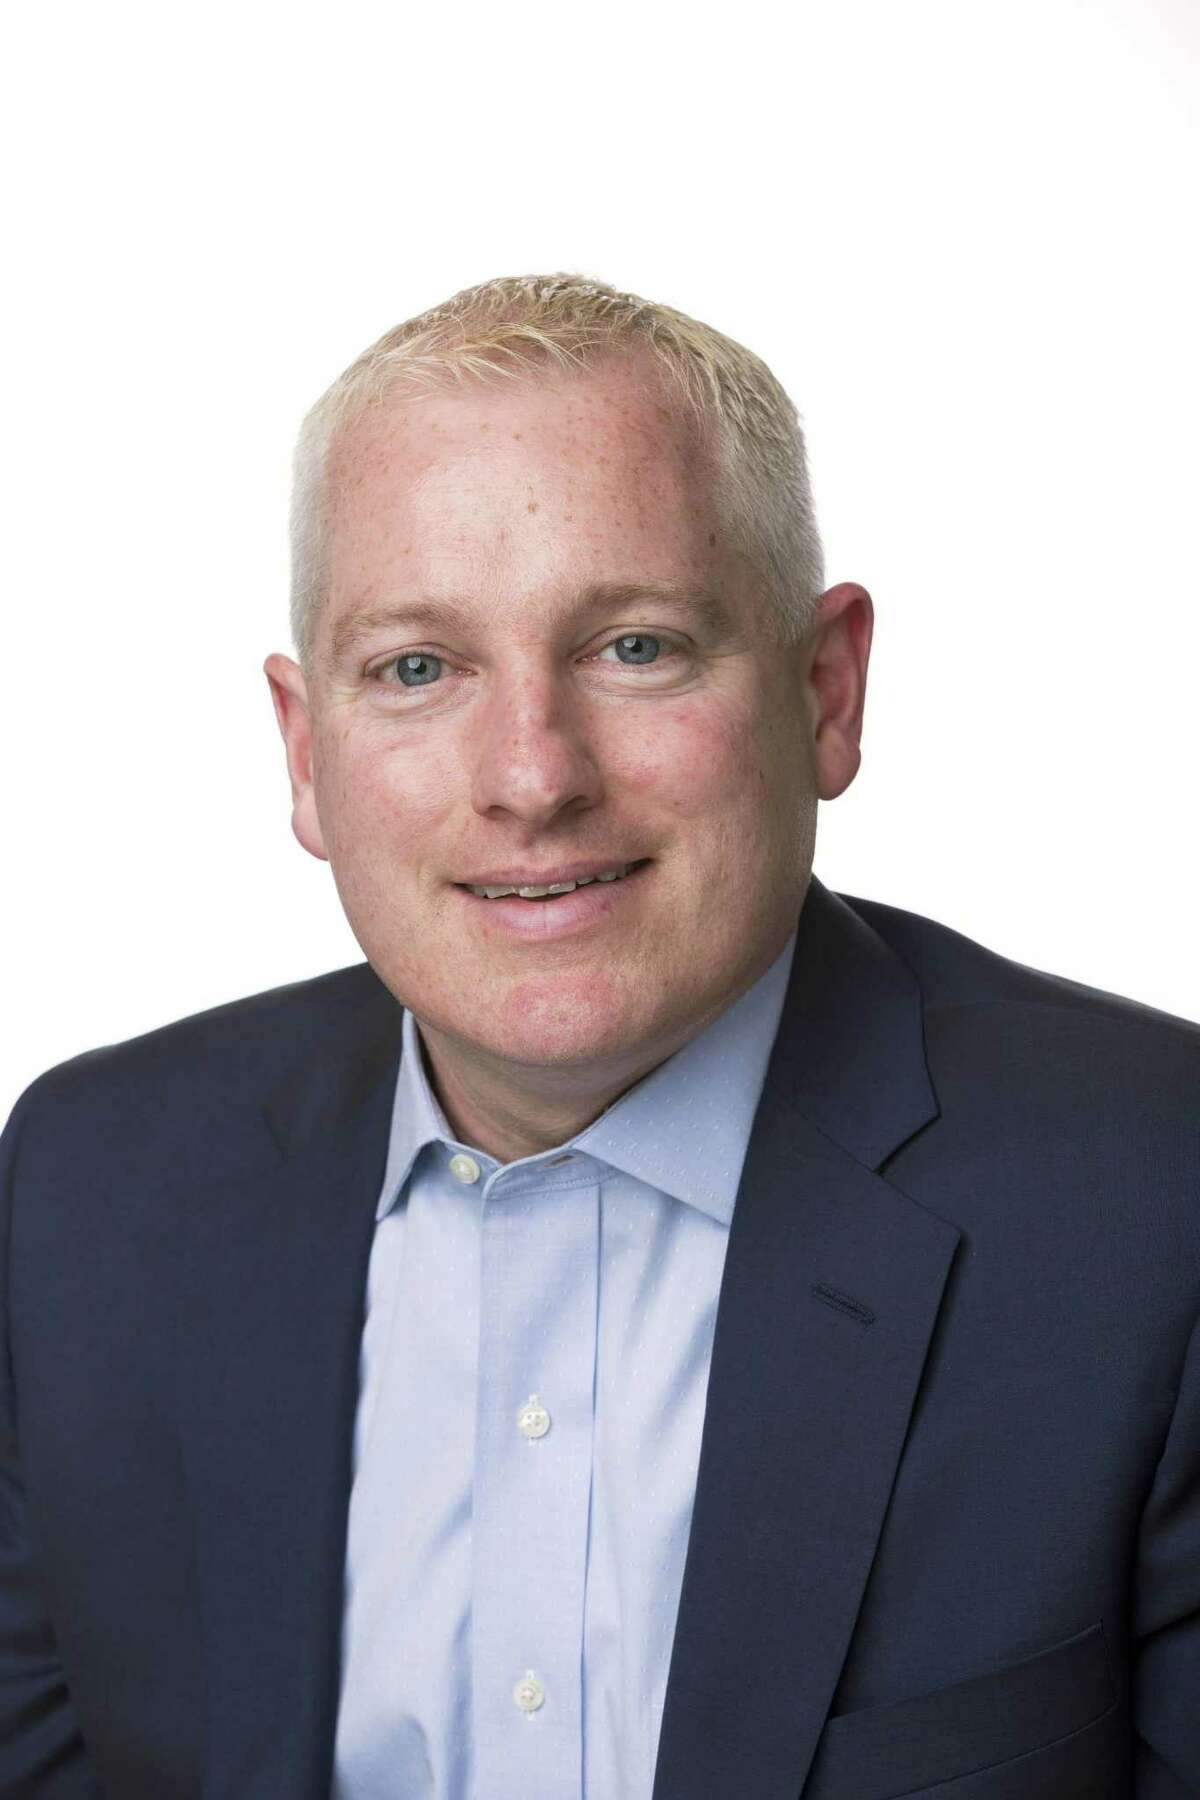 Brendan Donohue, NBA senior vice president of team marketing and business operations, has been selected to be managing director of the new NBA 2K esports league, a joint venture between the NBA and Take-Two Interactive Software, Inc.